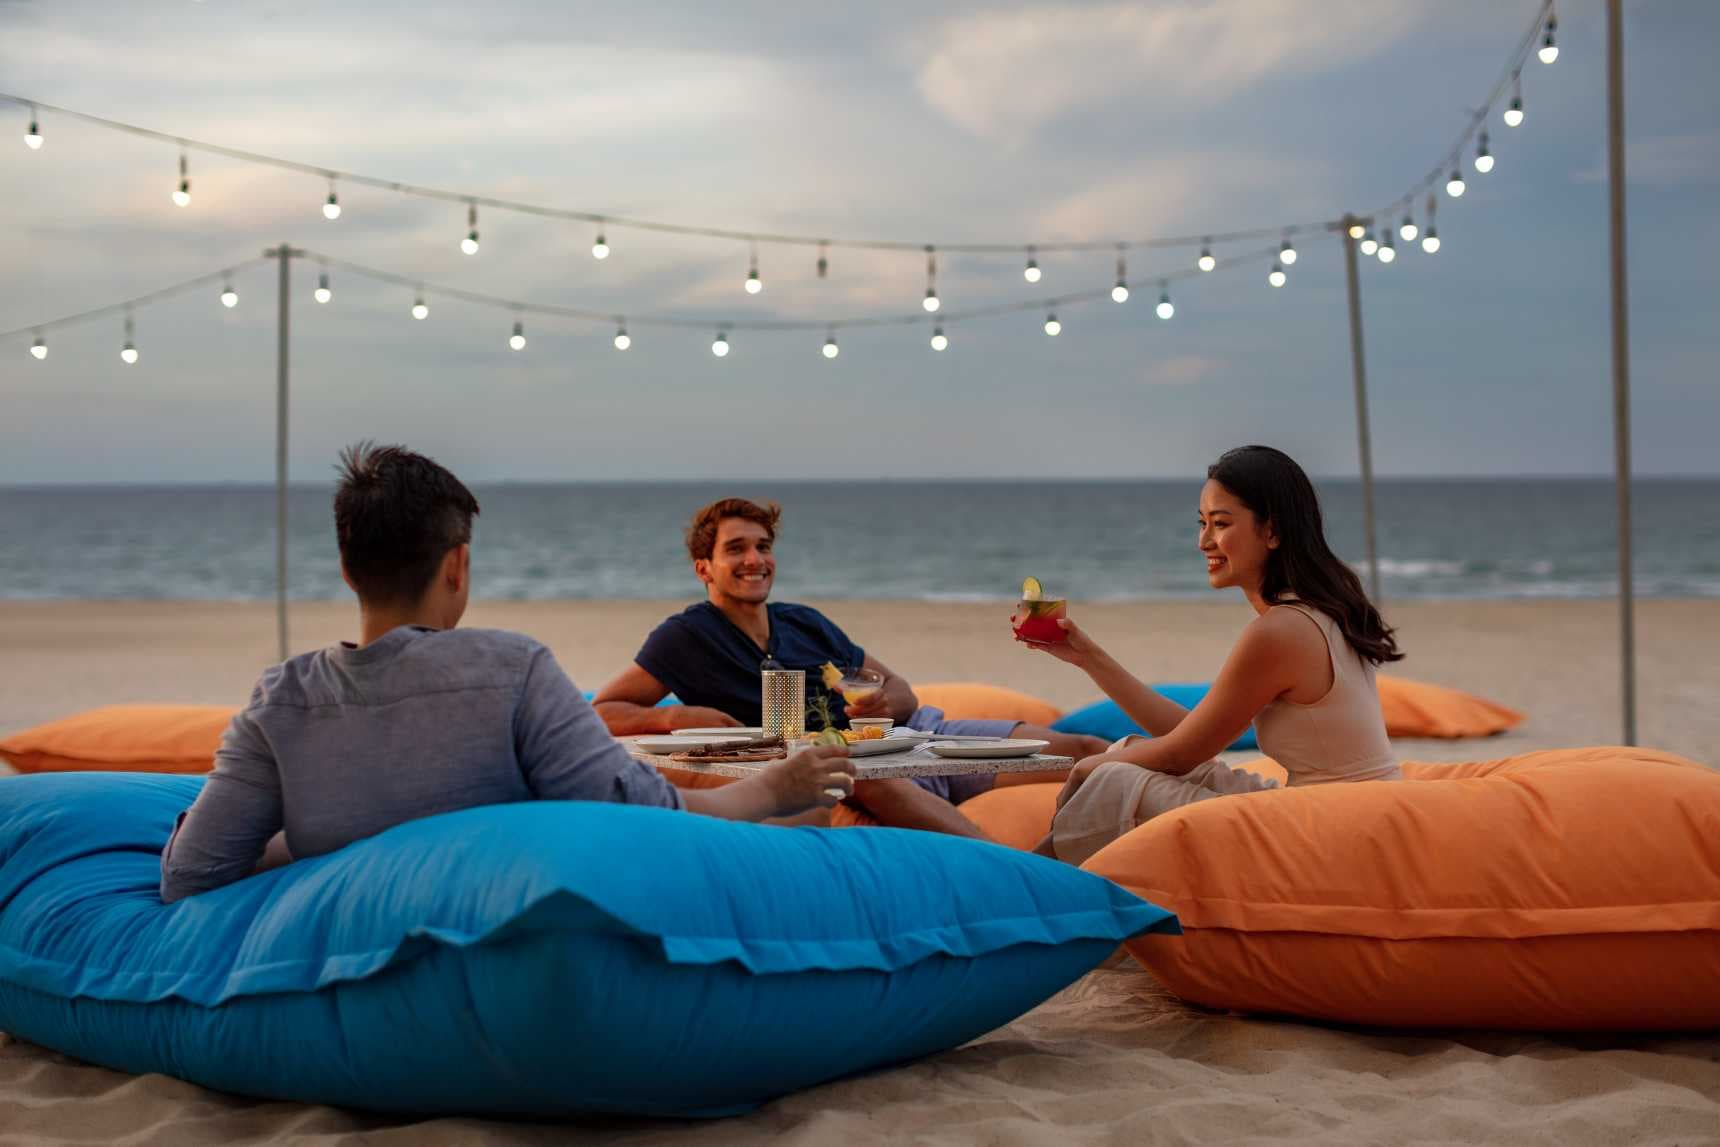 Three friends sitting on giant pillows having cocktails on the beach.